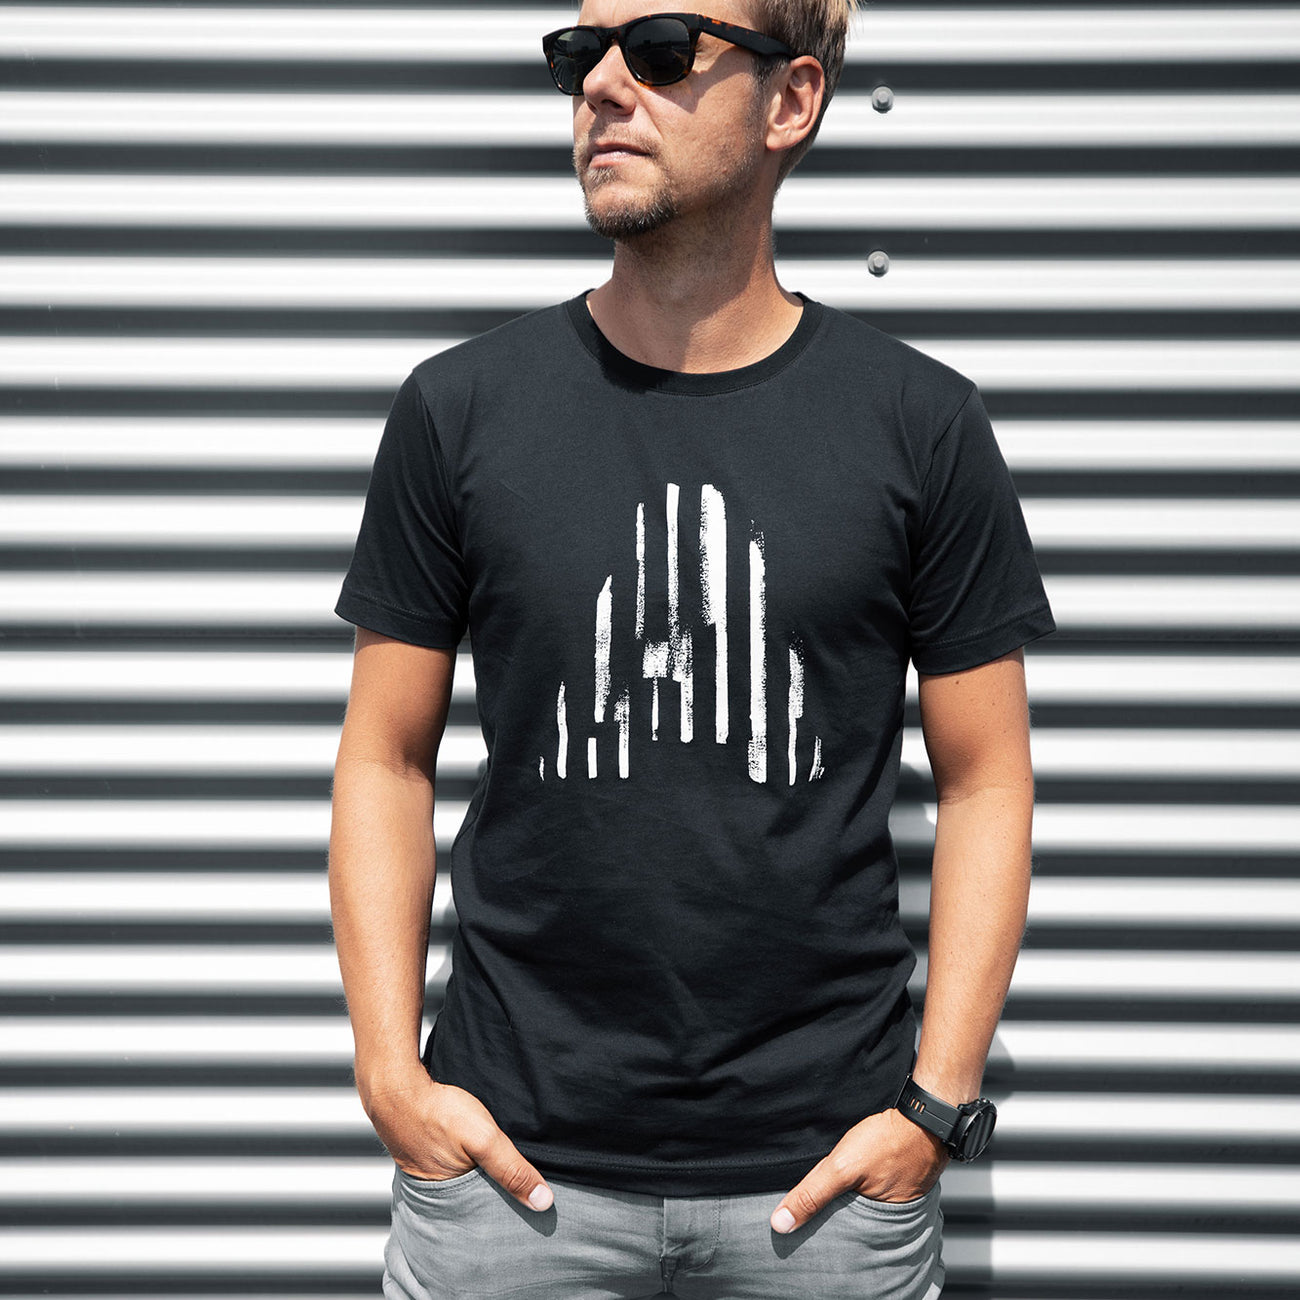 Armin van Buuren - Limited Edition Brushed A-Shirt